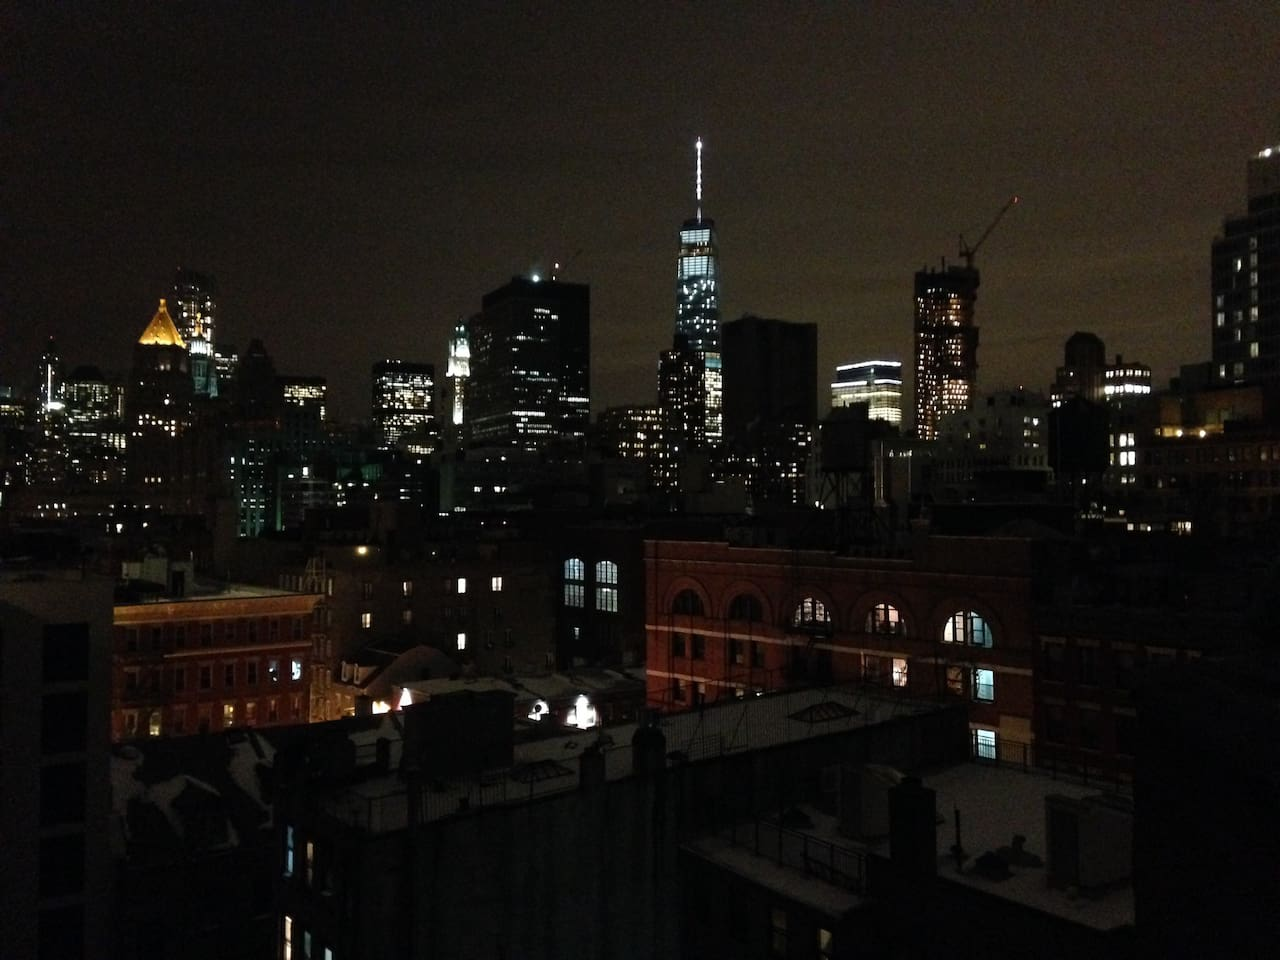 Rooftop view at night.